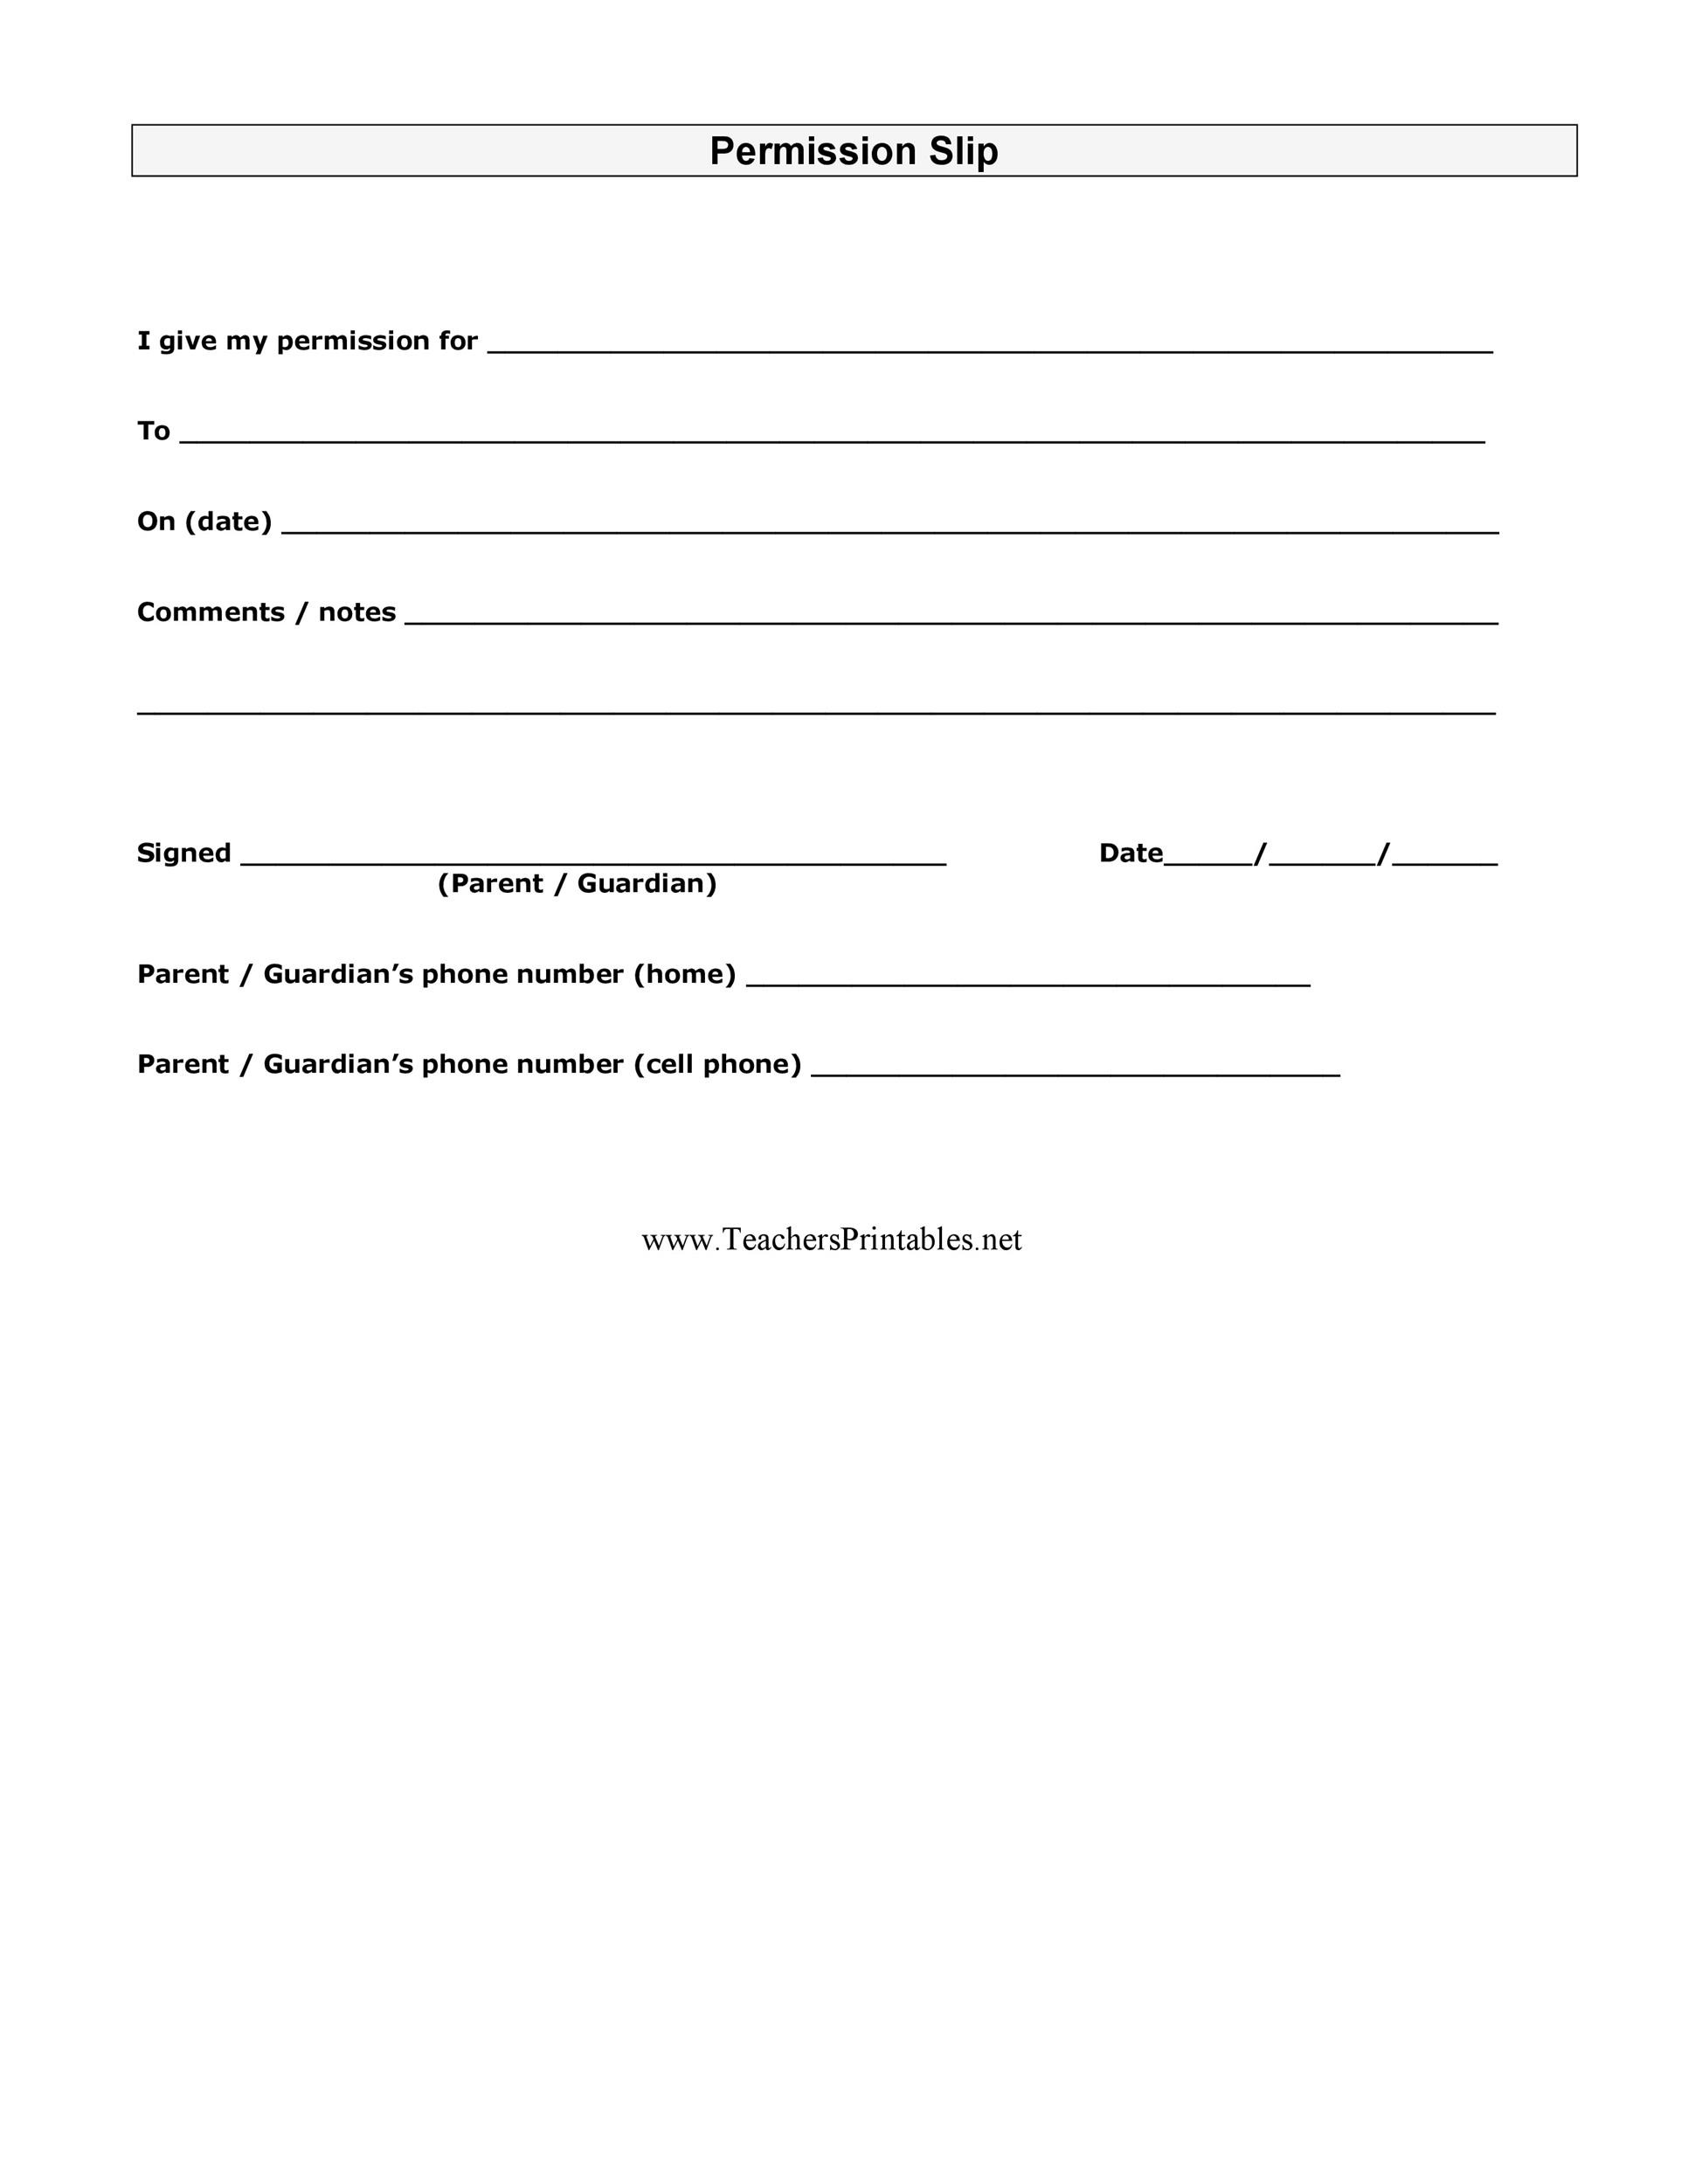 35 permission slip templates field trip forms printable permission slip 07 altavistaventures Images